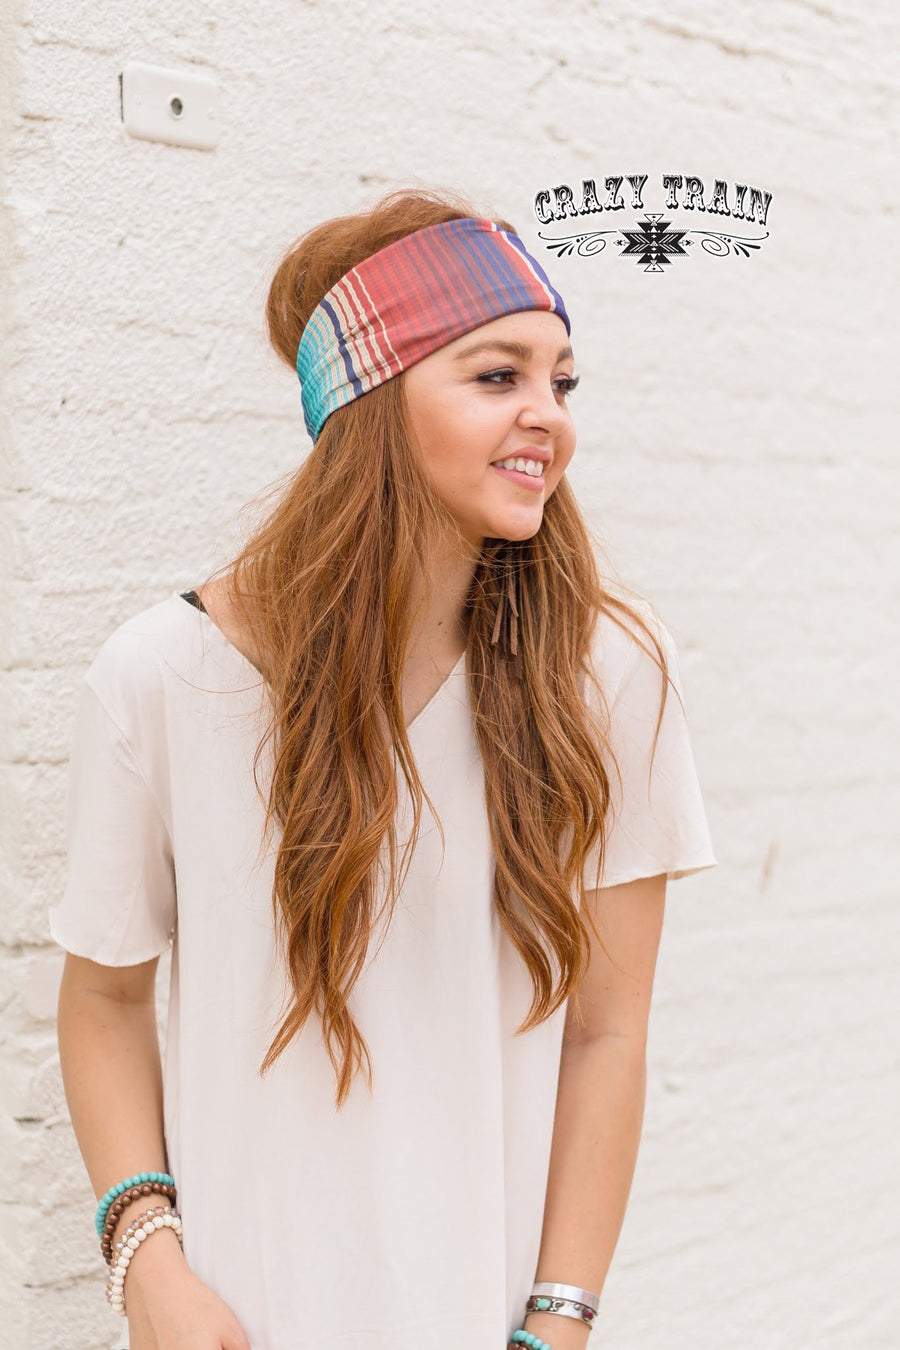 July 4 Serape Headband